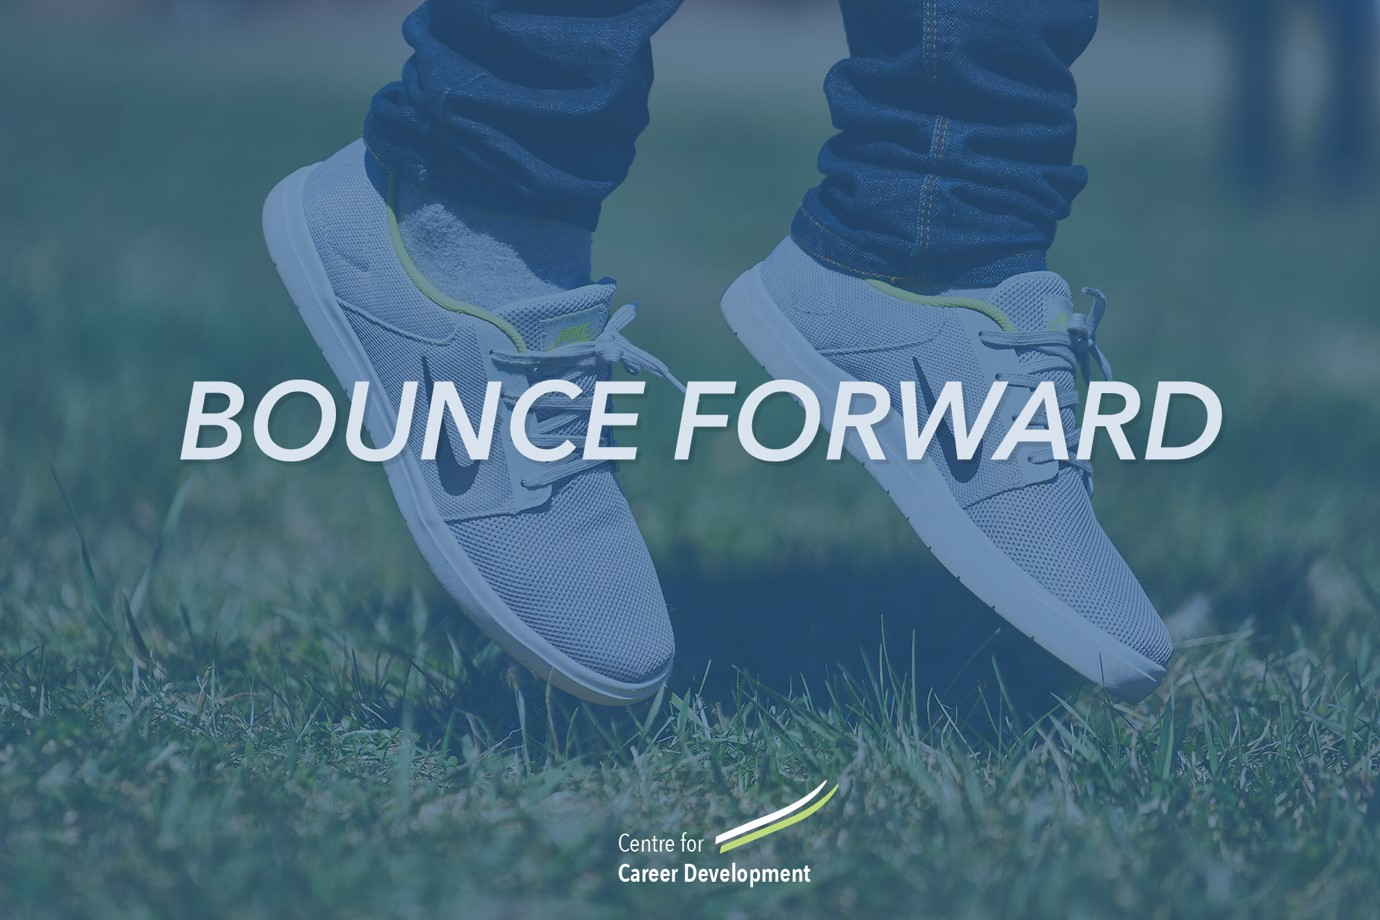 Bounce Forward Resilience: Bouncing Forward and Back